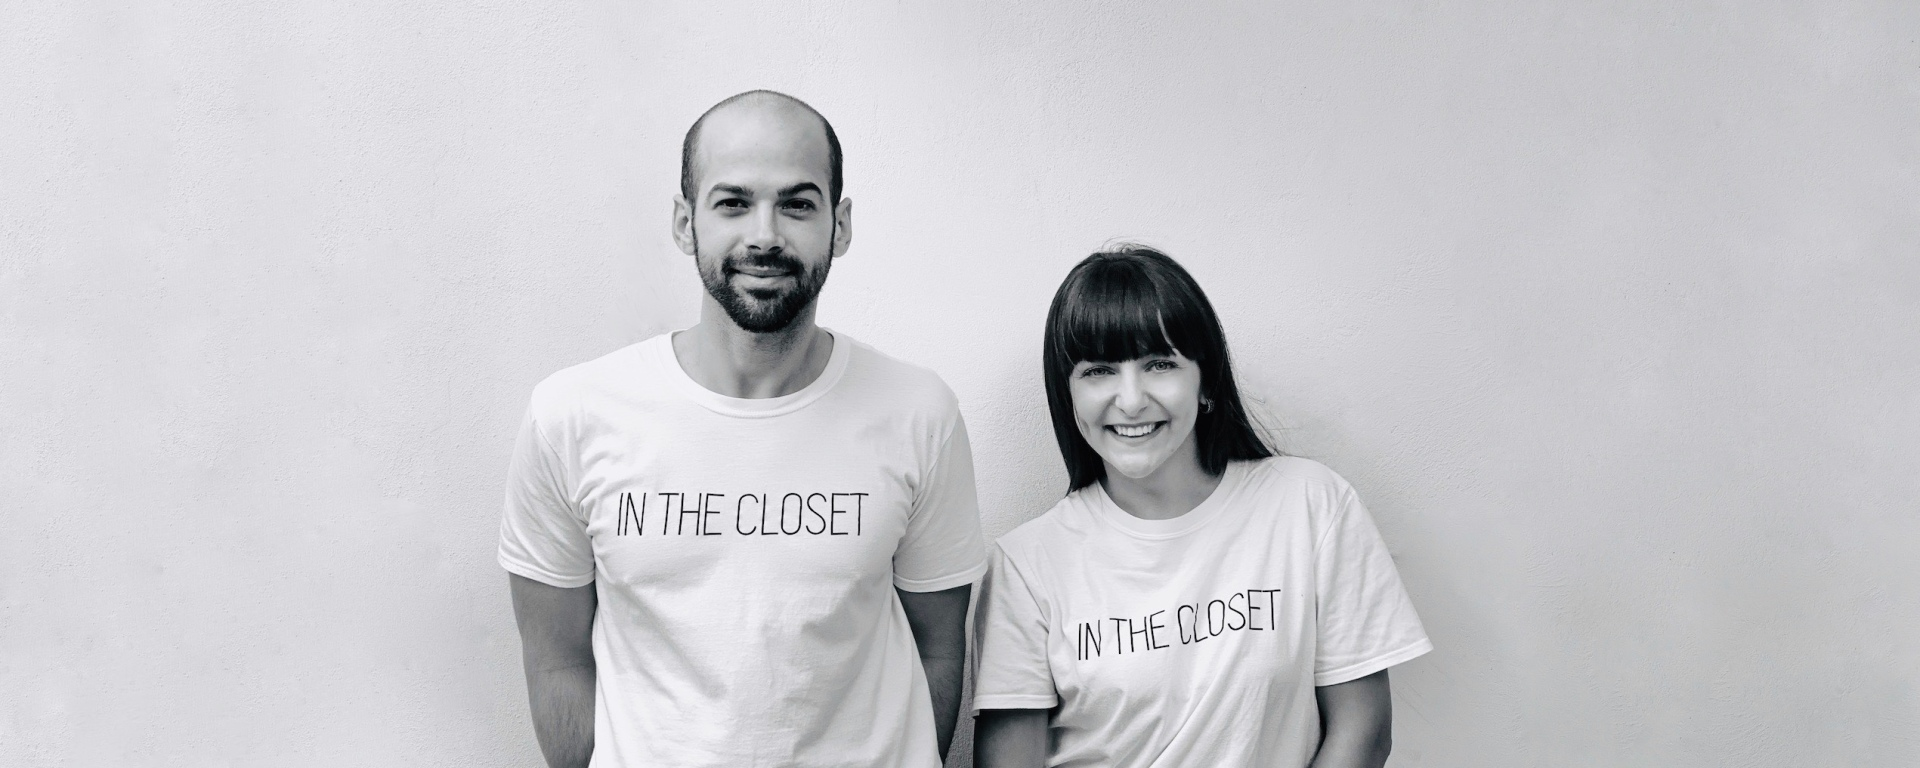 #intheclosetgr In The Closet